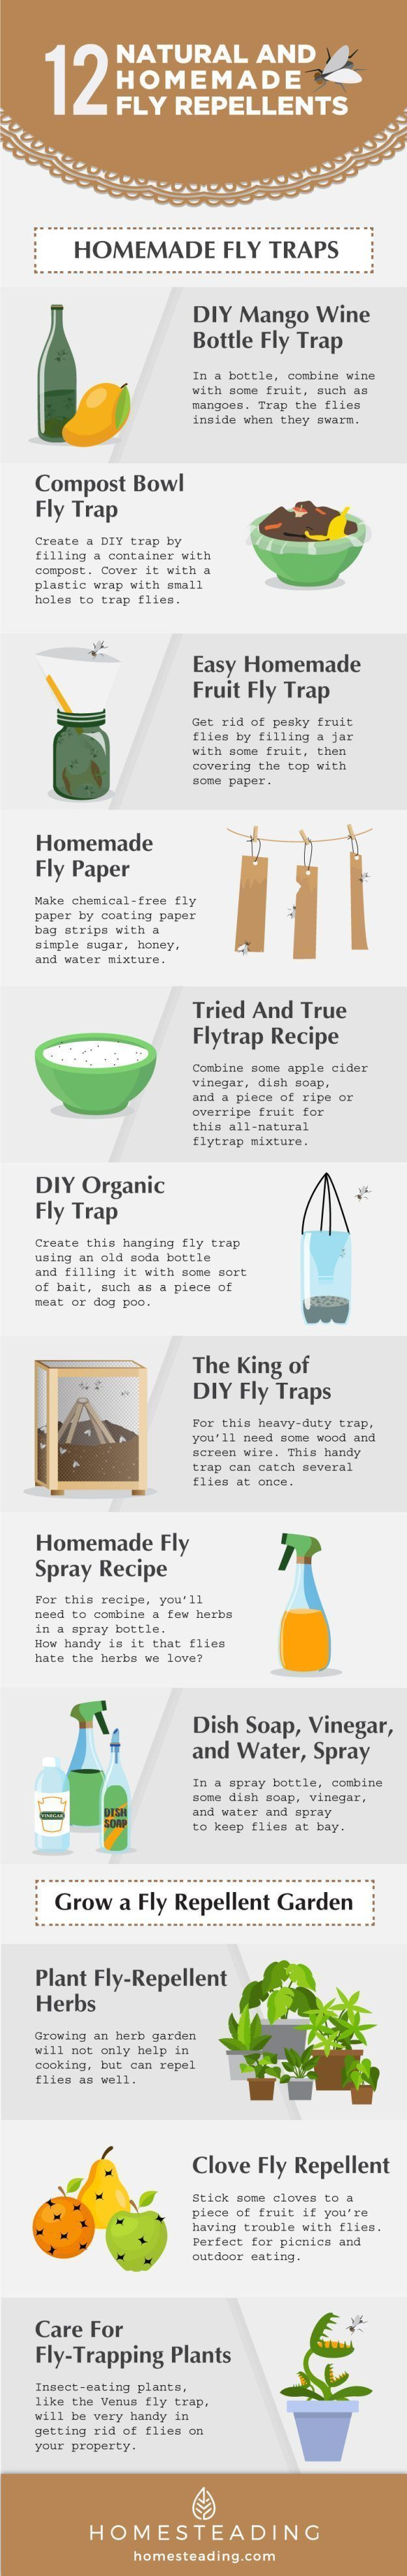 How to get rid of flies homesteads survival and craft